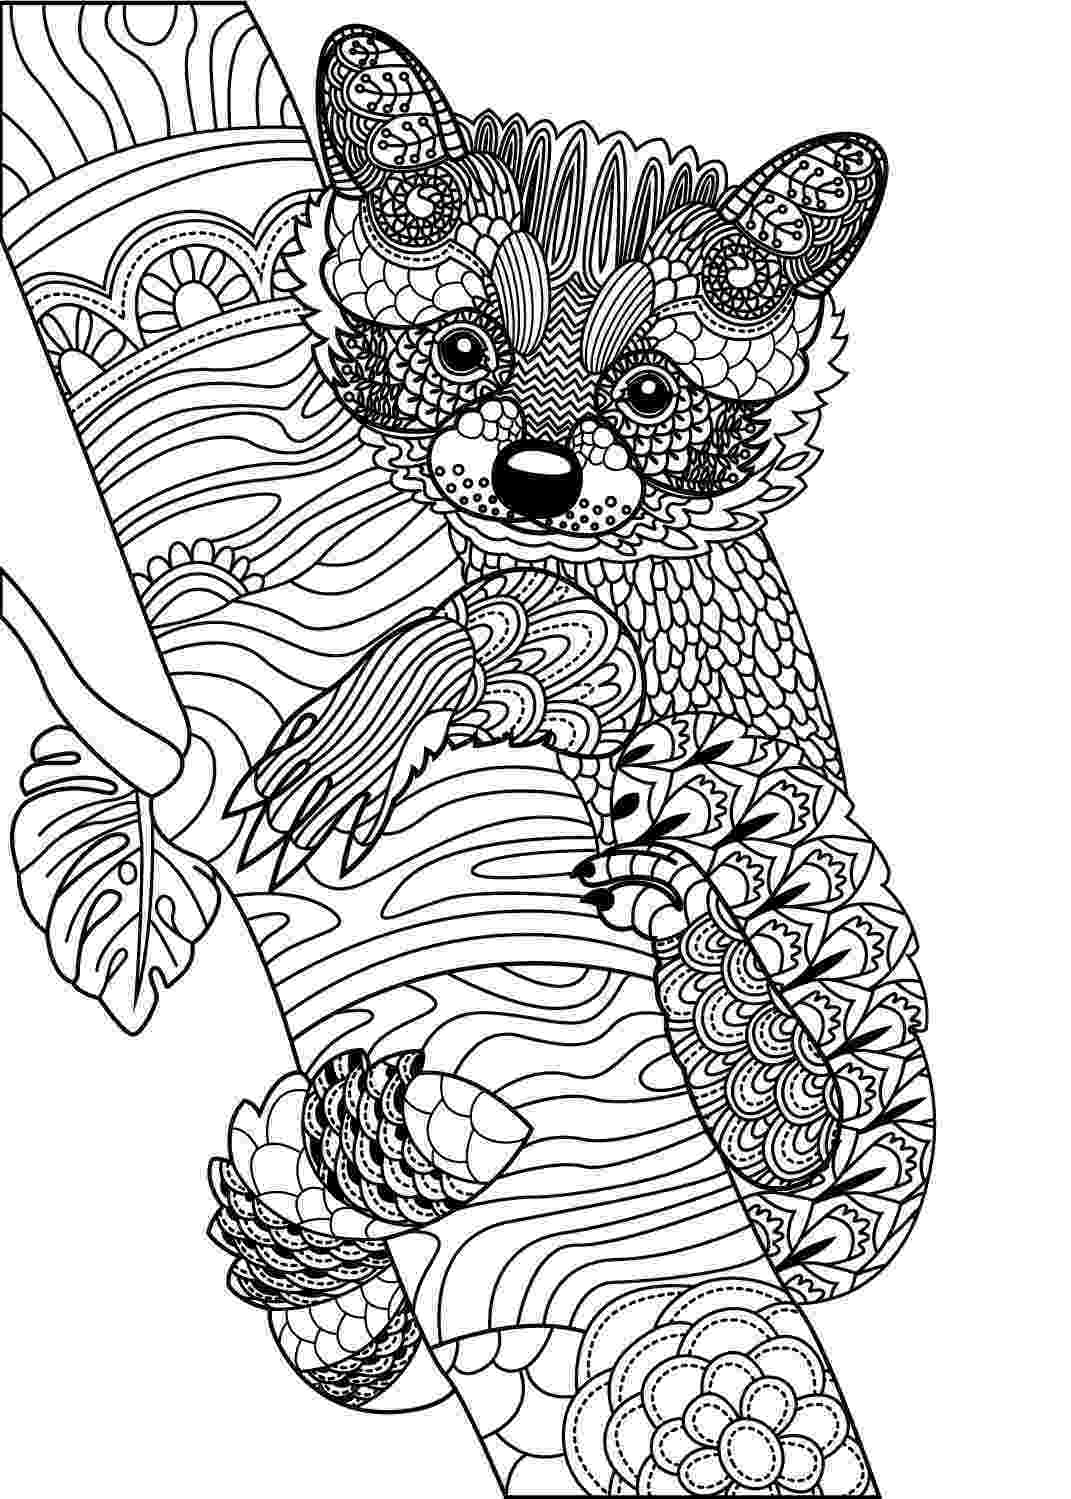 animal coloring book for adults wild animals to color colorish free coloring app for book for adults animal coloring